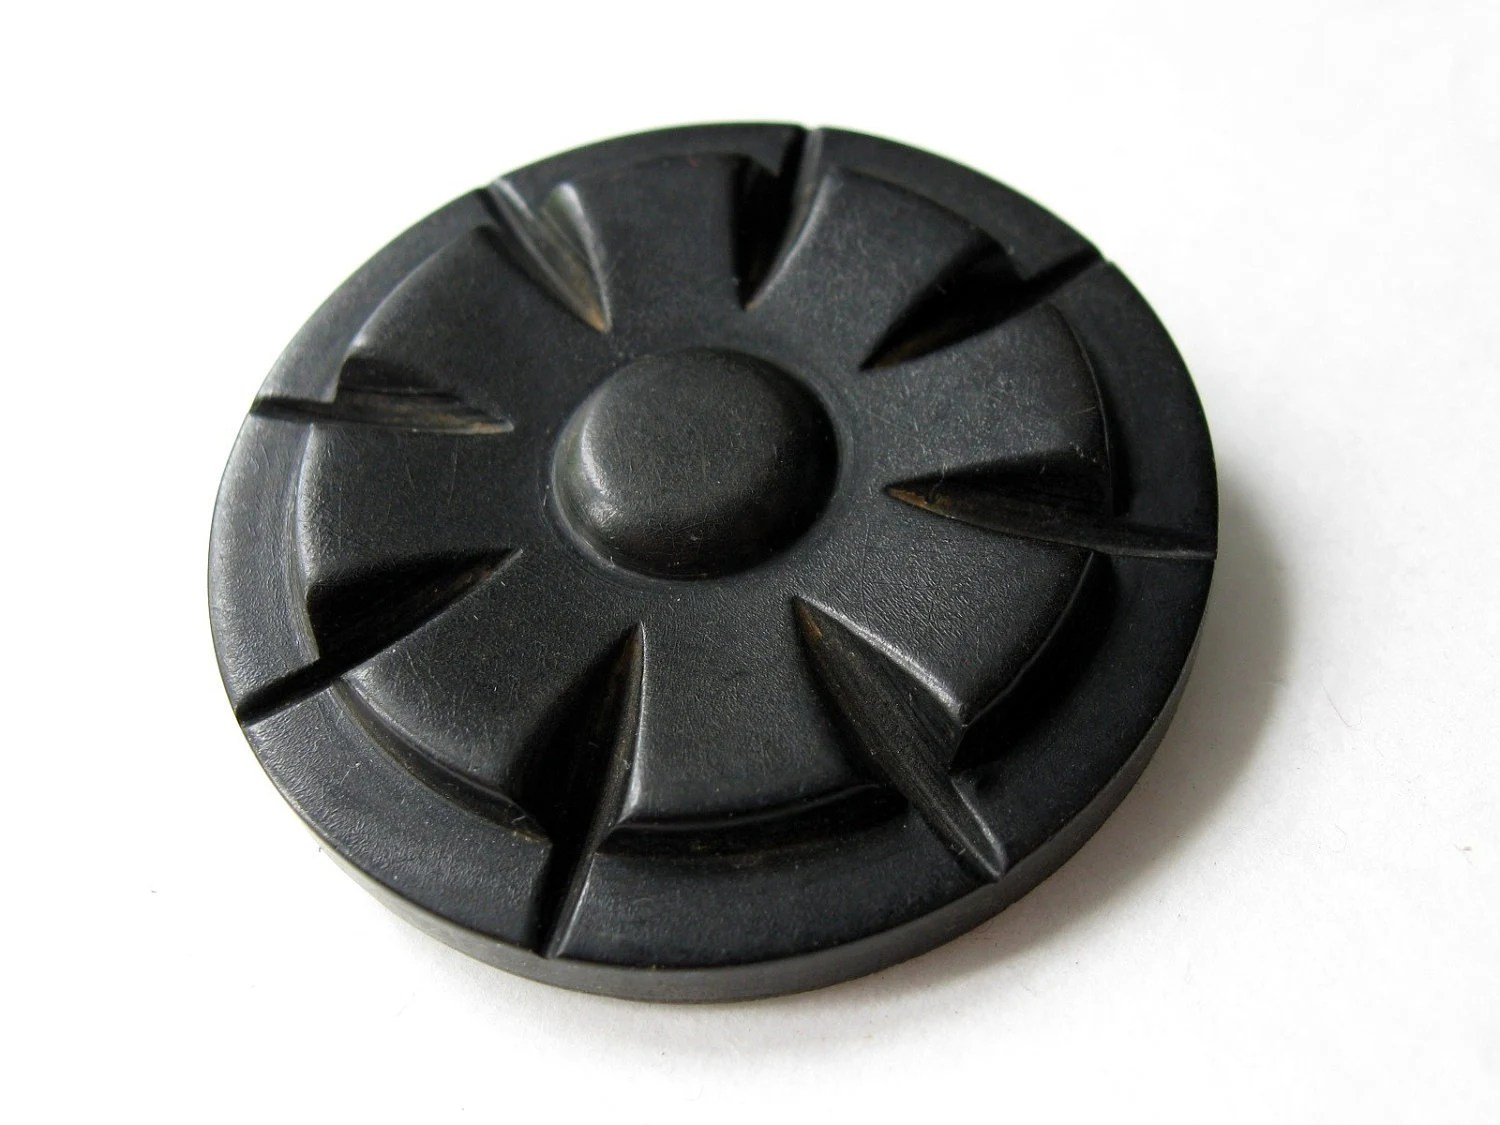 Art Deco Extra large button - 1 black vintage button 48mm - EcoCraftSupply